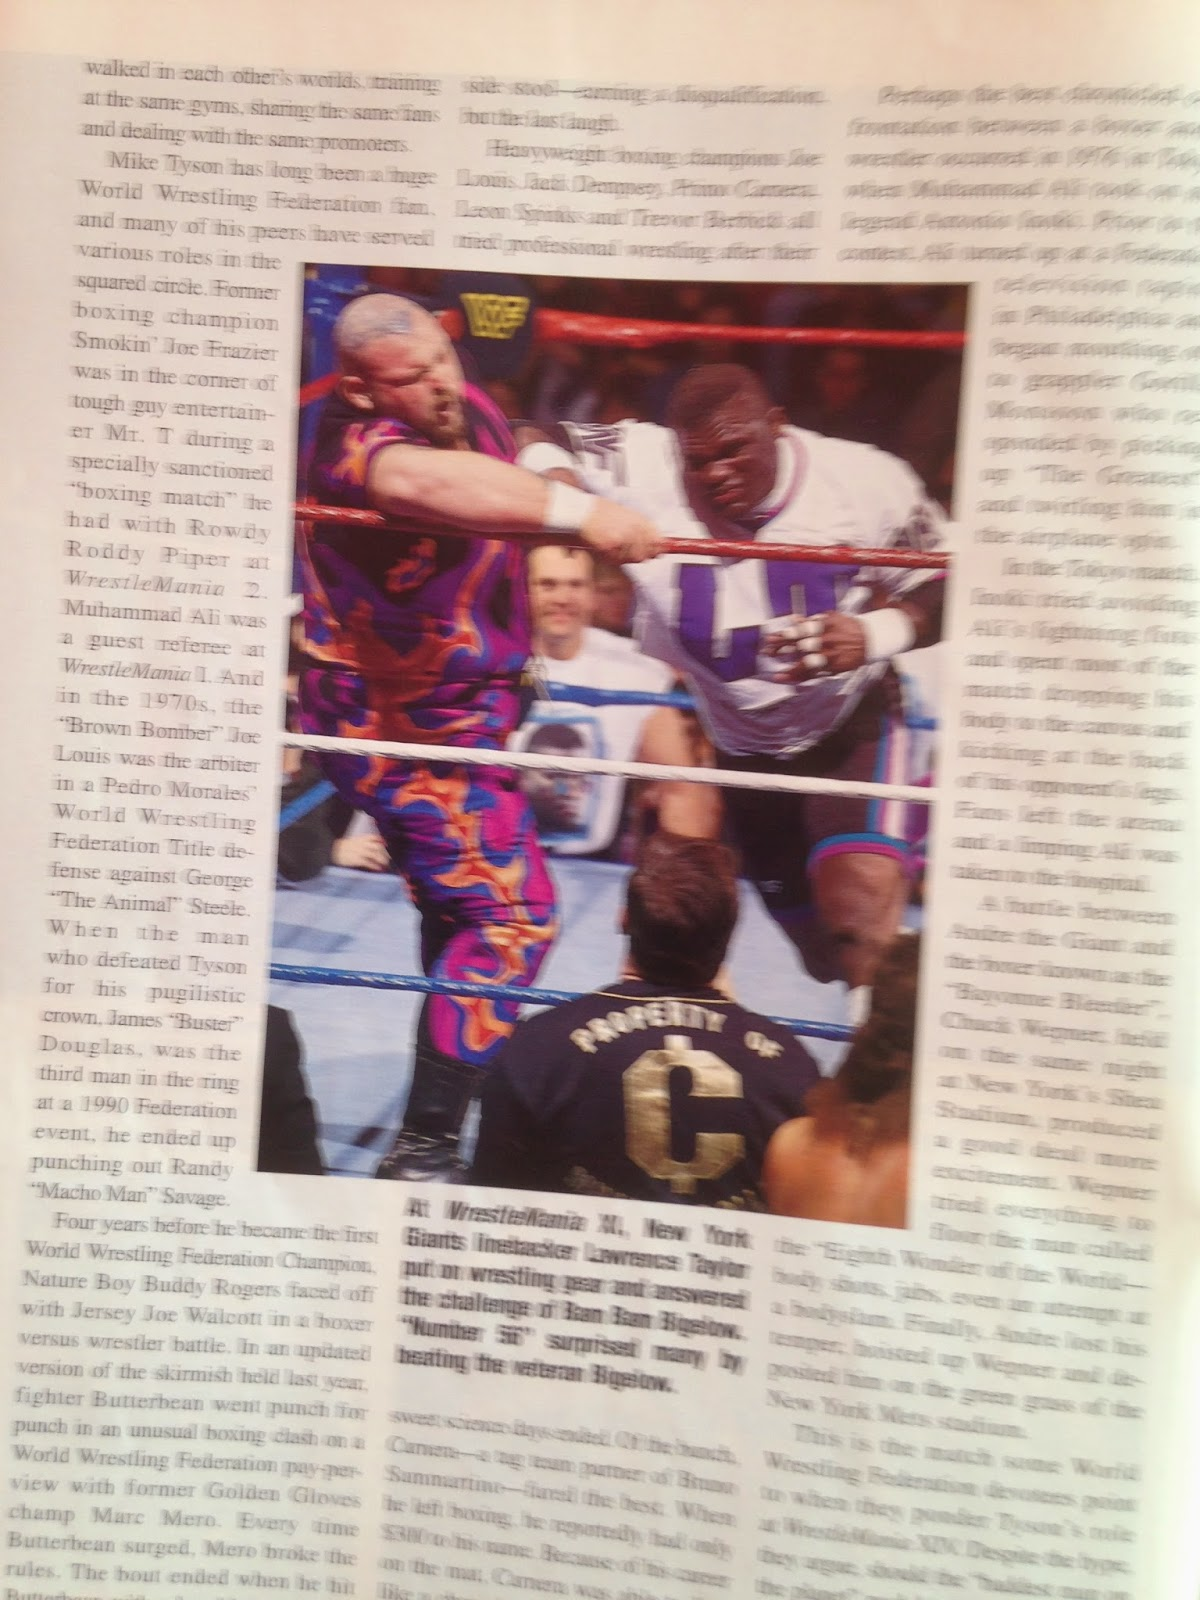 WWE - WWF Raw Magazine - April 1998 -   Lawrence Taylor battles Bam Bam Bigelow